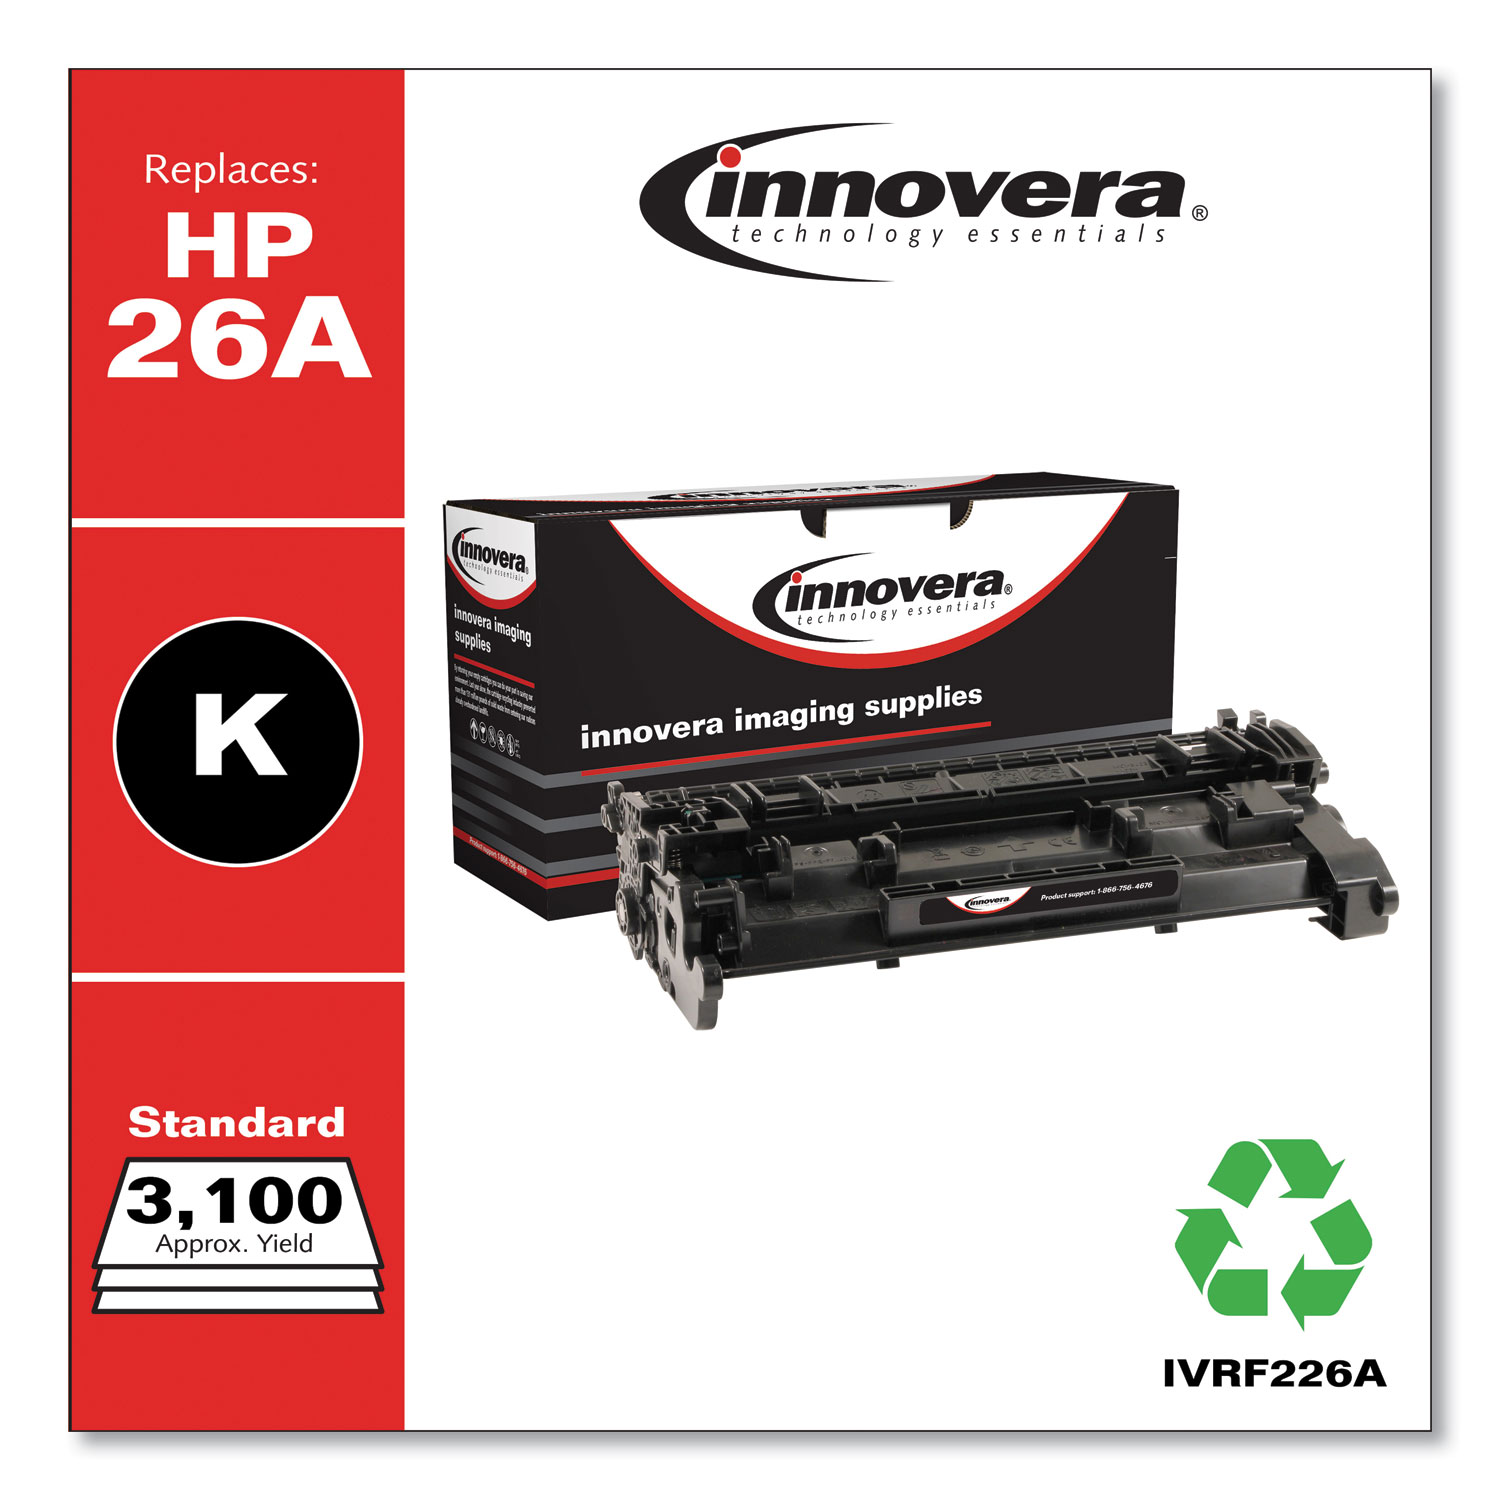 Remanufactured Black Toner Cartridge, Replacement for HP 26A (CF226A), 3,100 Page-Yield